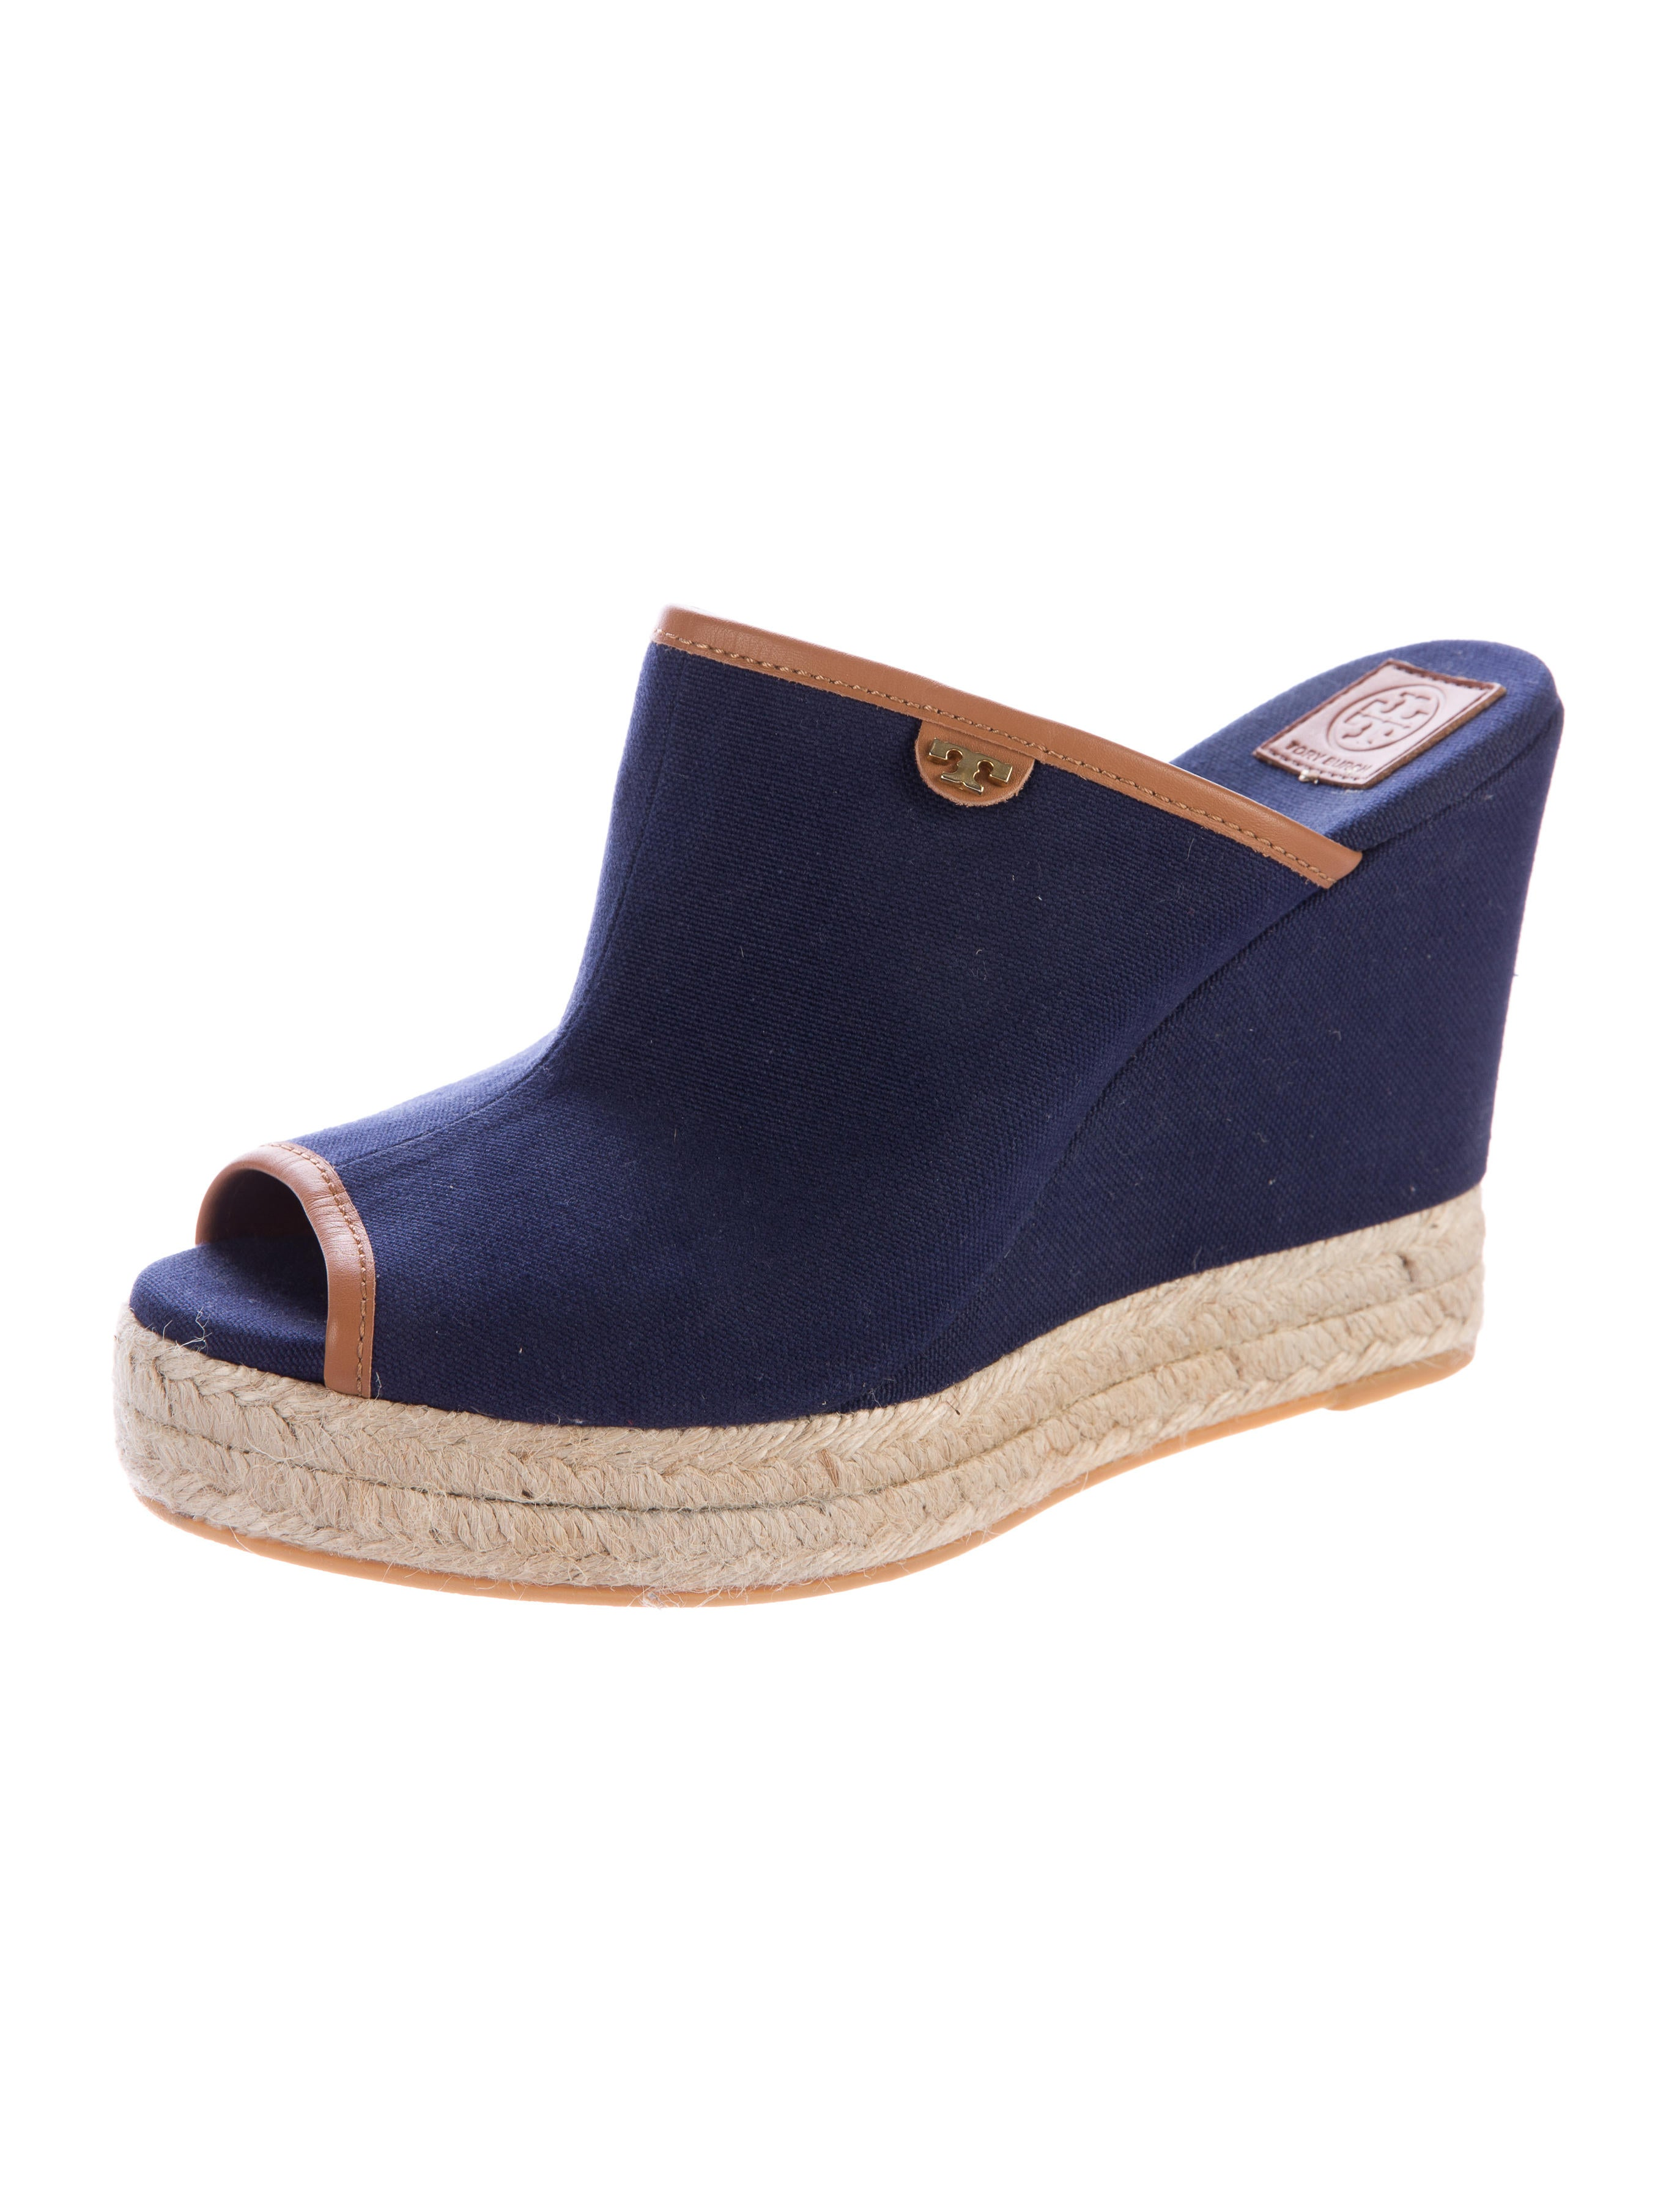 burch espadrille wedge sandals shoes wto98182